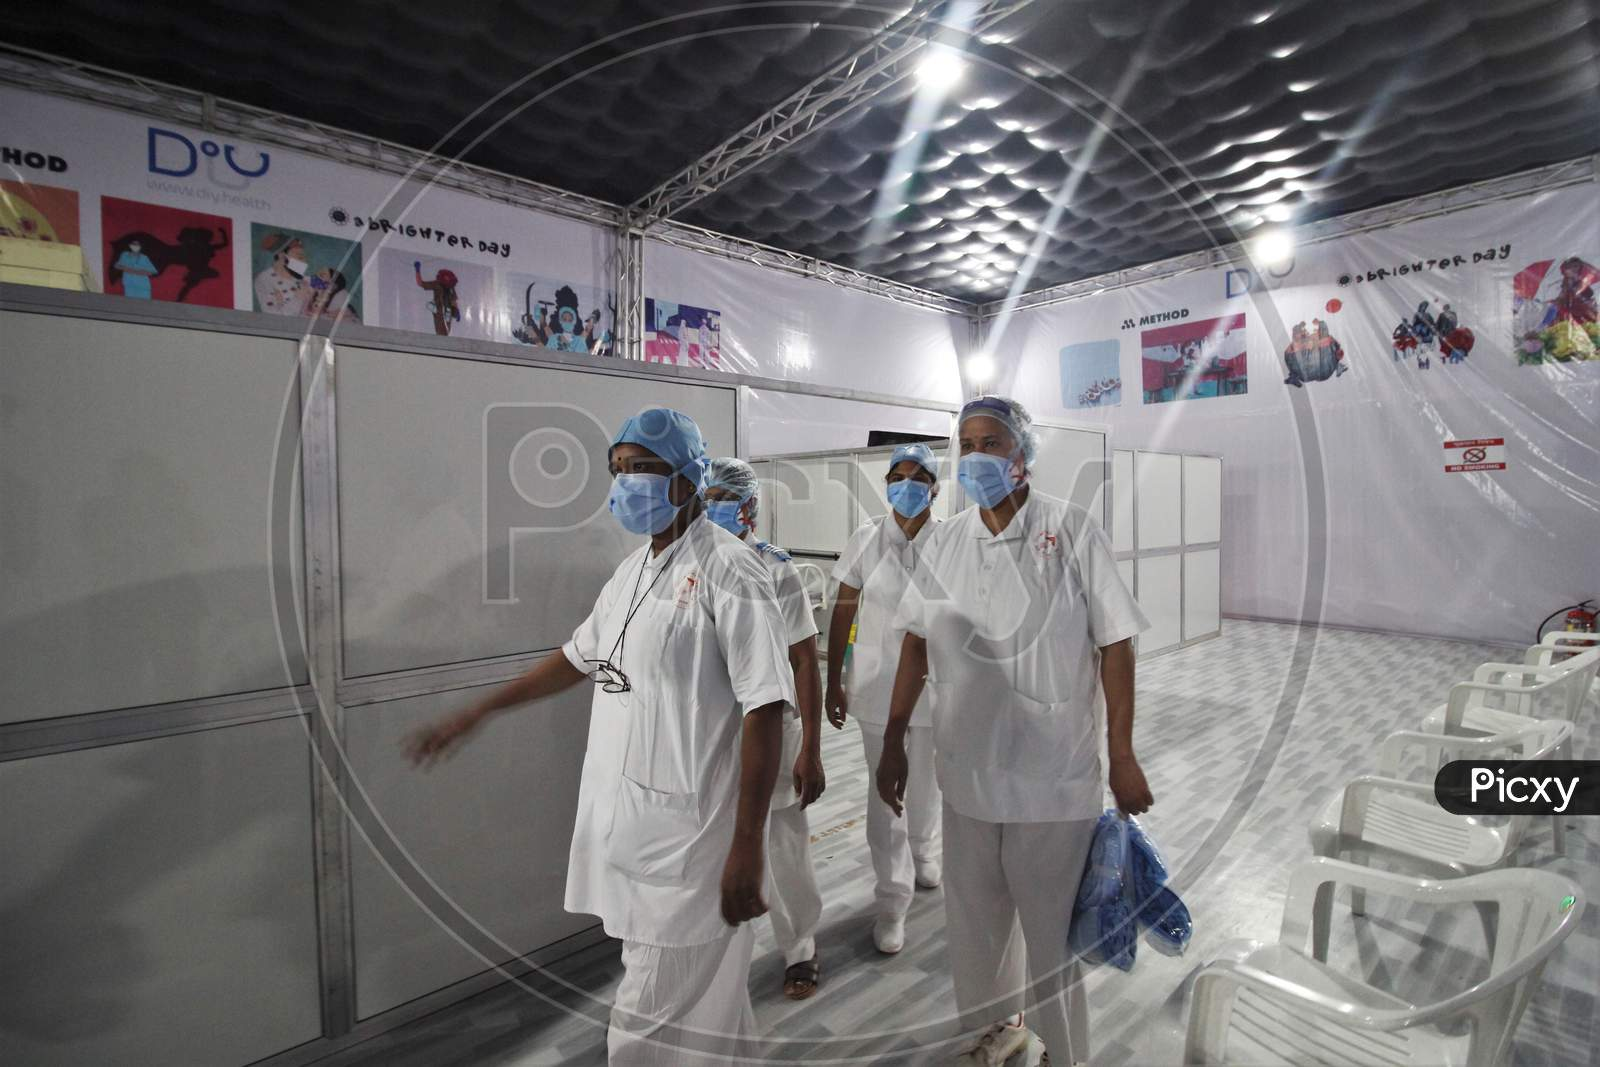 Nurses are seen showing around the newly inaugurated temporary facility created to screen cancer patients for covid-19, in Mumbai, India on July 30, 2020.